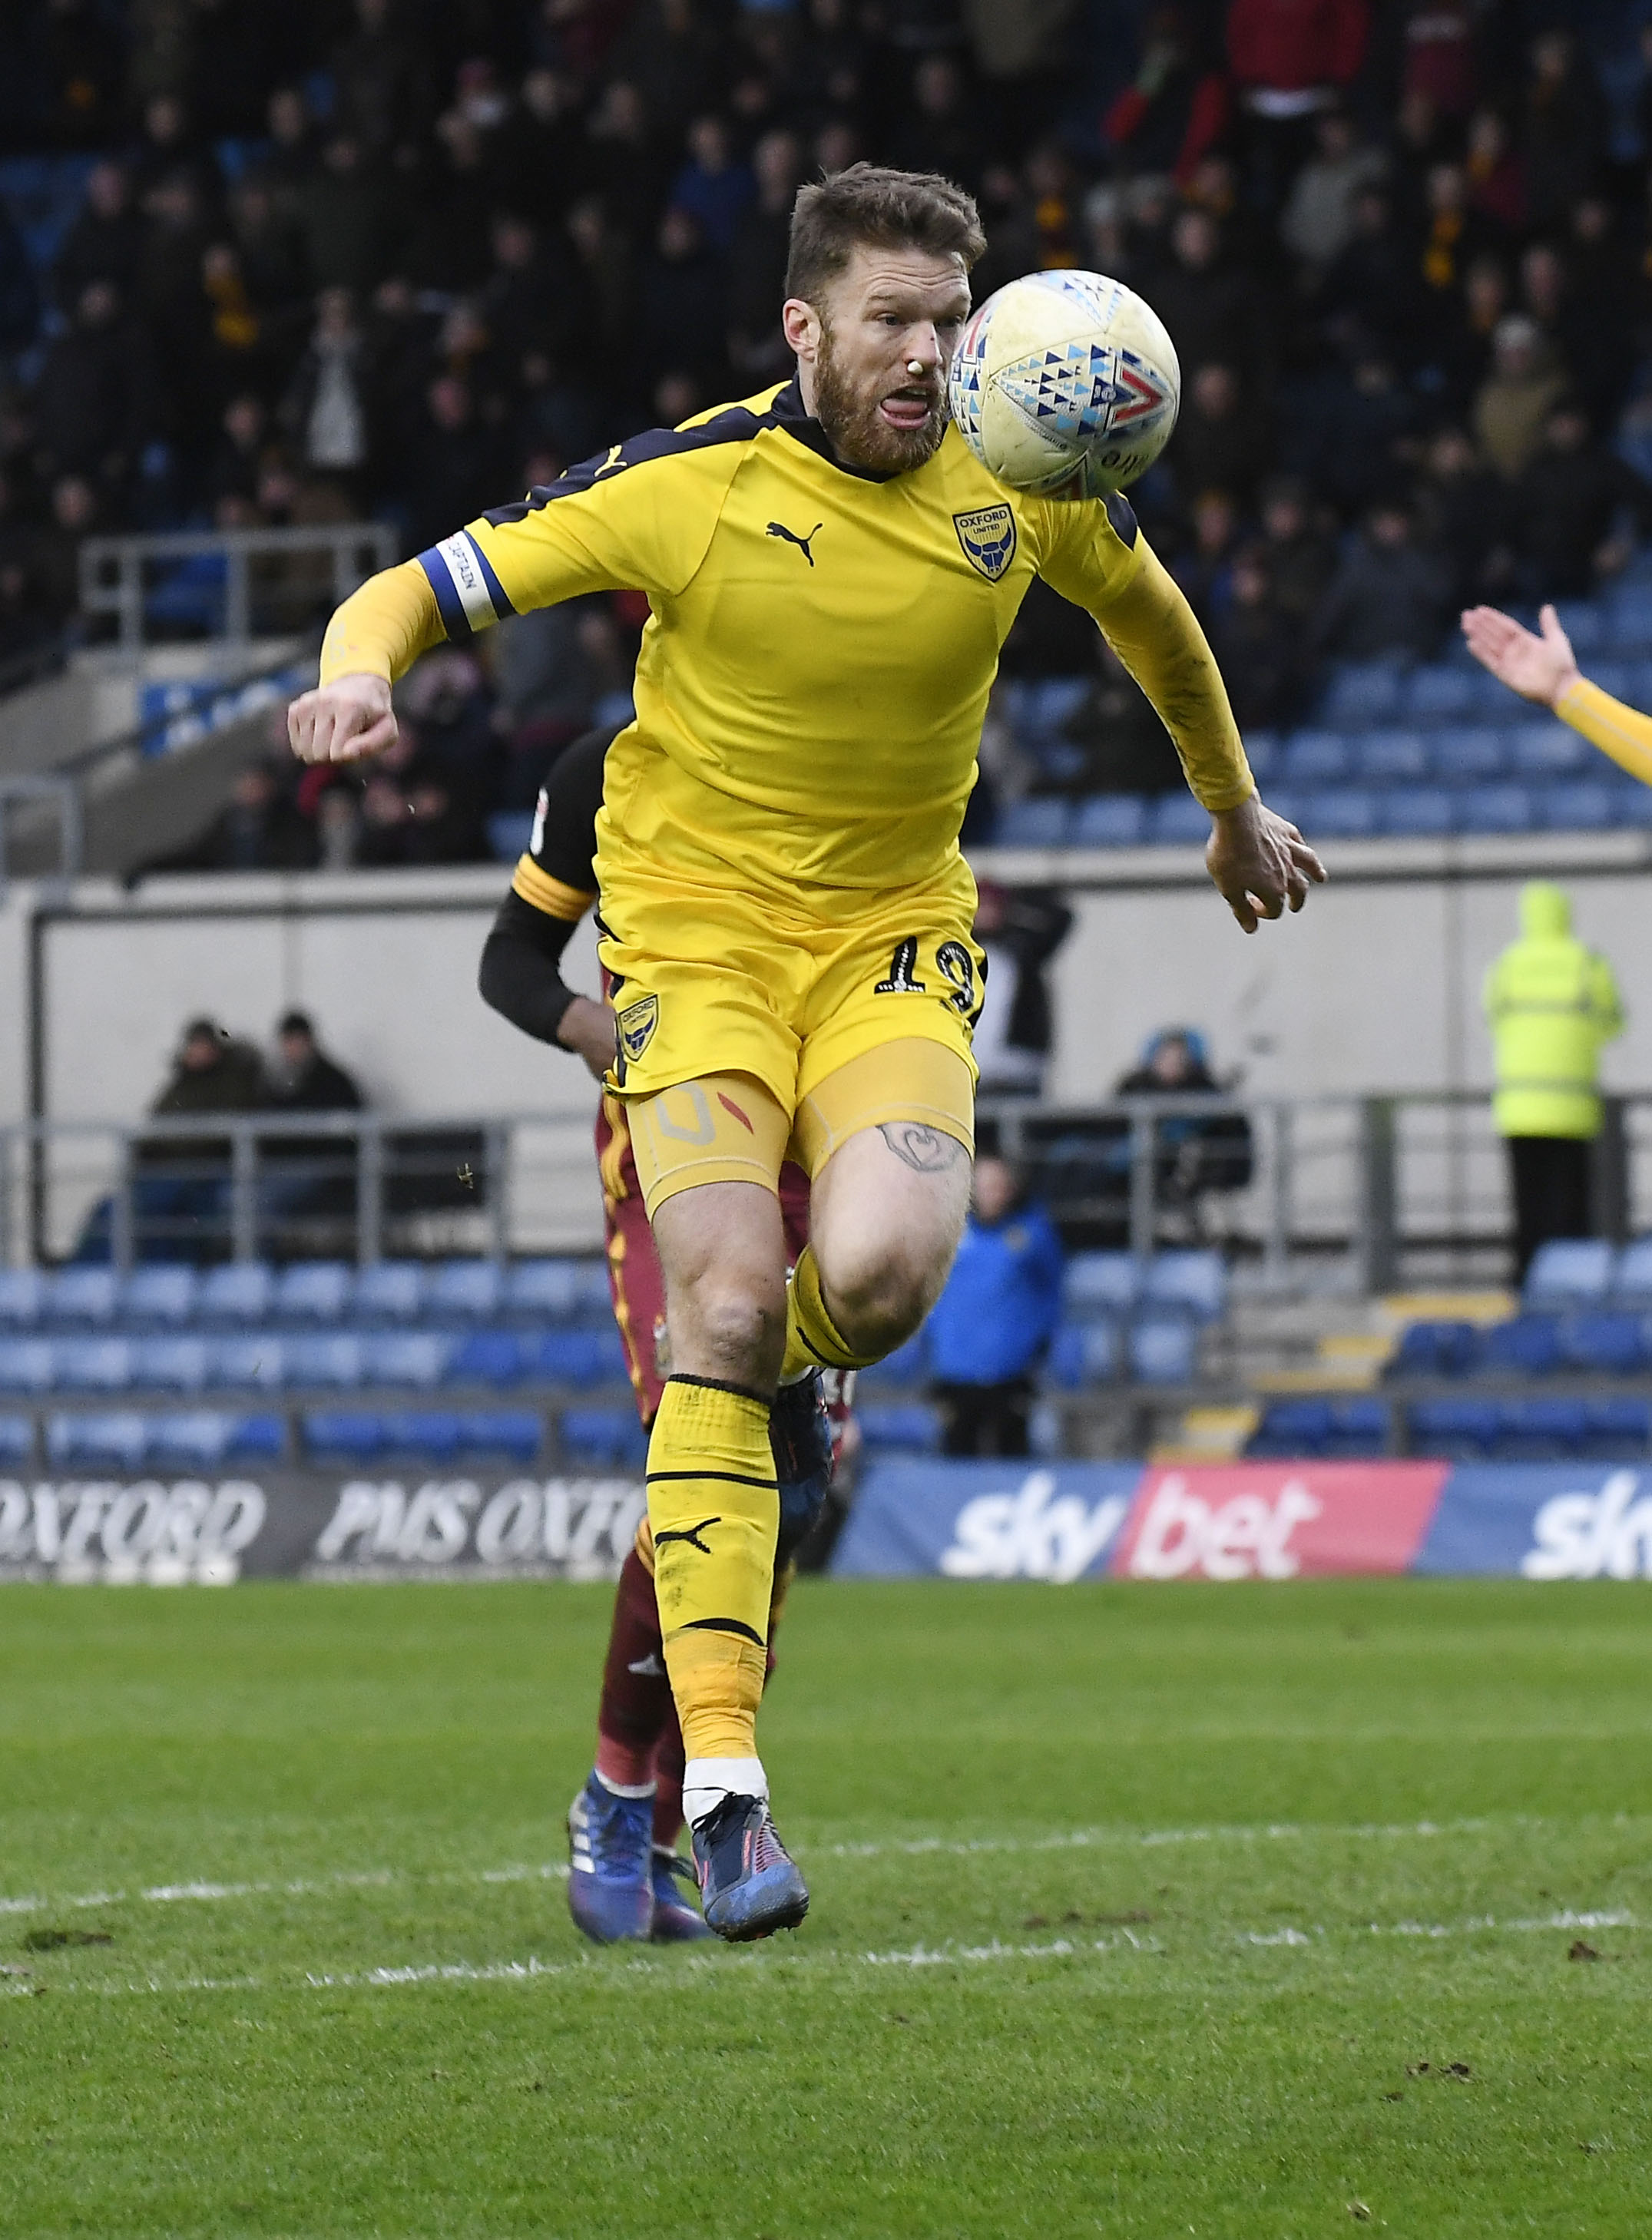 A patched-up Jamie Mackie gets ready to bury a chance in the 94th minute against Bradford City – before all hell broke loose as the officials decided if the goal should stand  Pictures: David Fleming